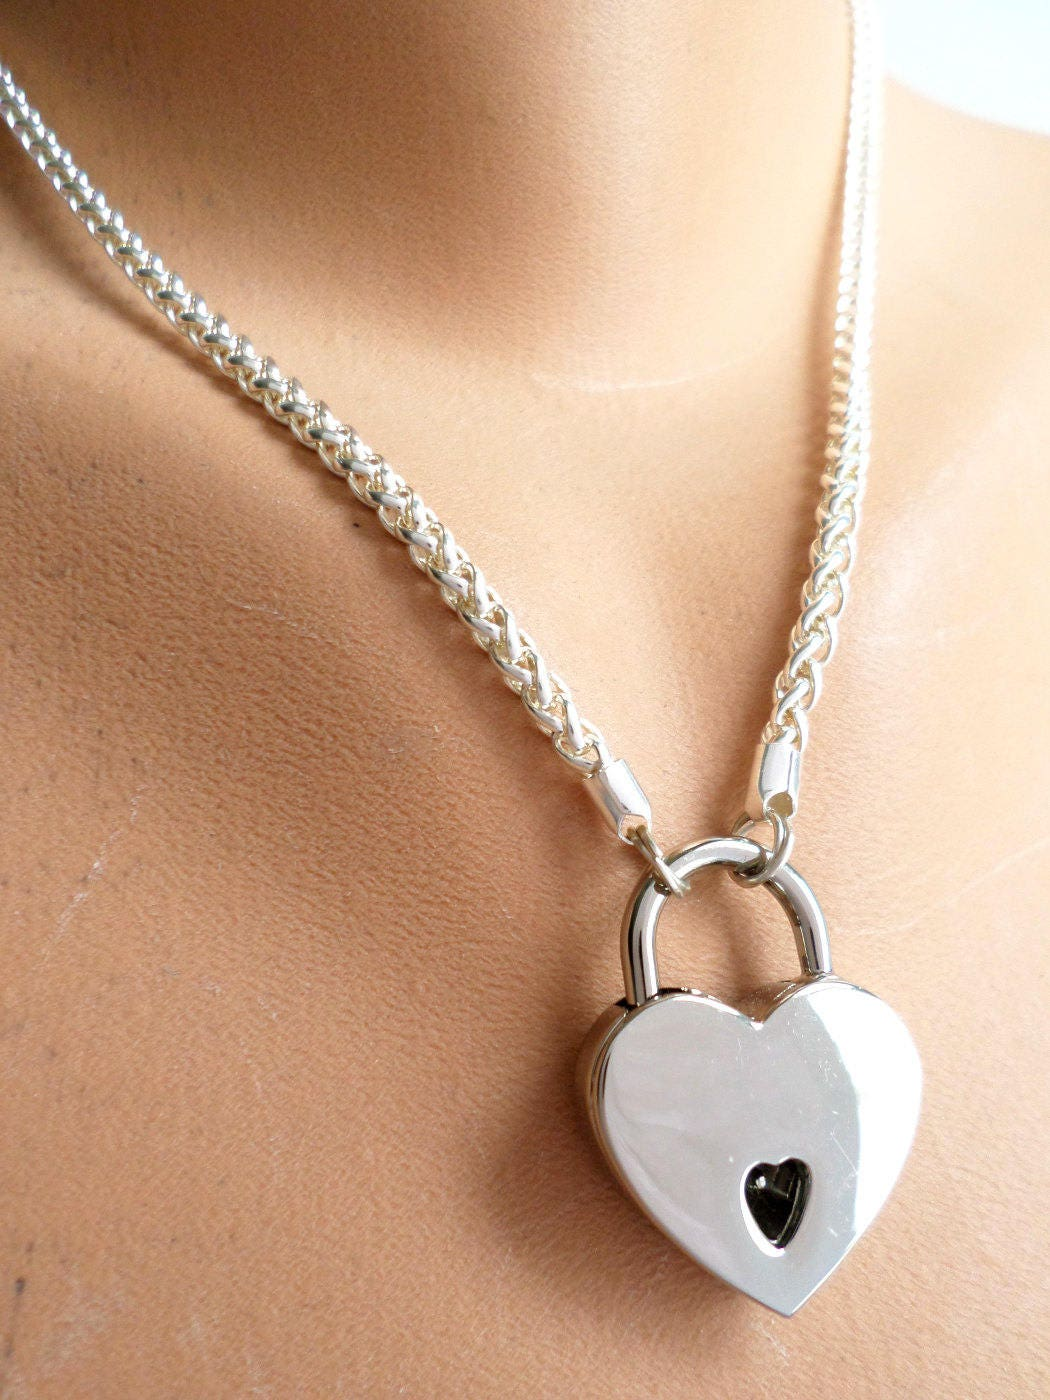 Silver Mini Padlock And Keys for Discreet Day Collar Necklace BDSM Collar DDLG or Submissive Collar